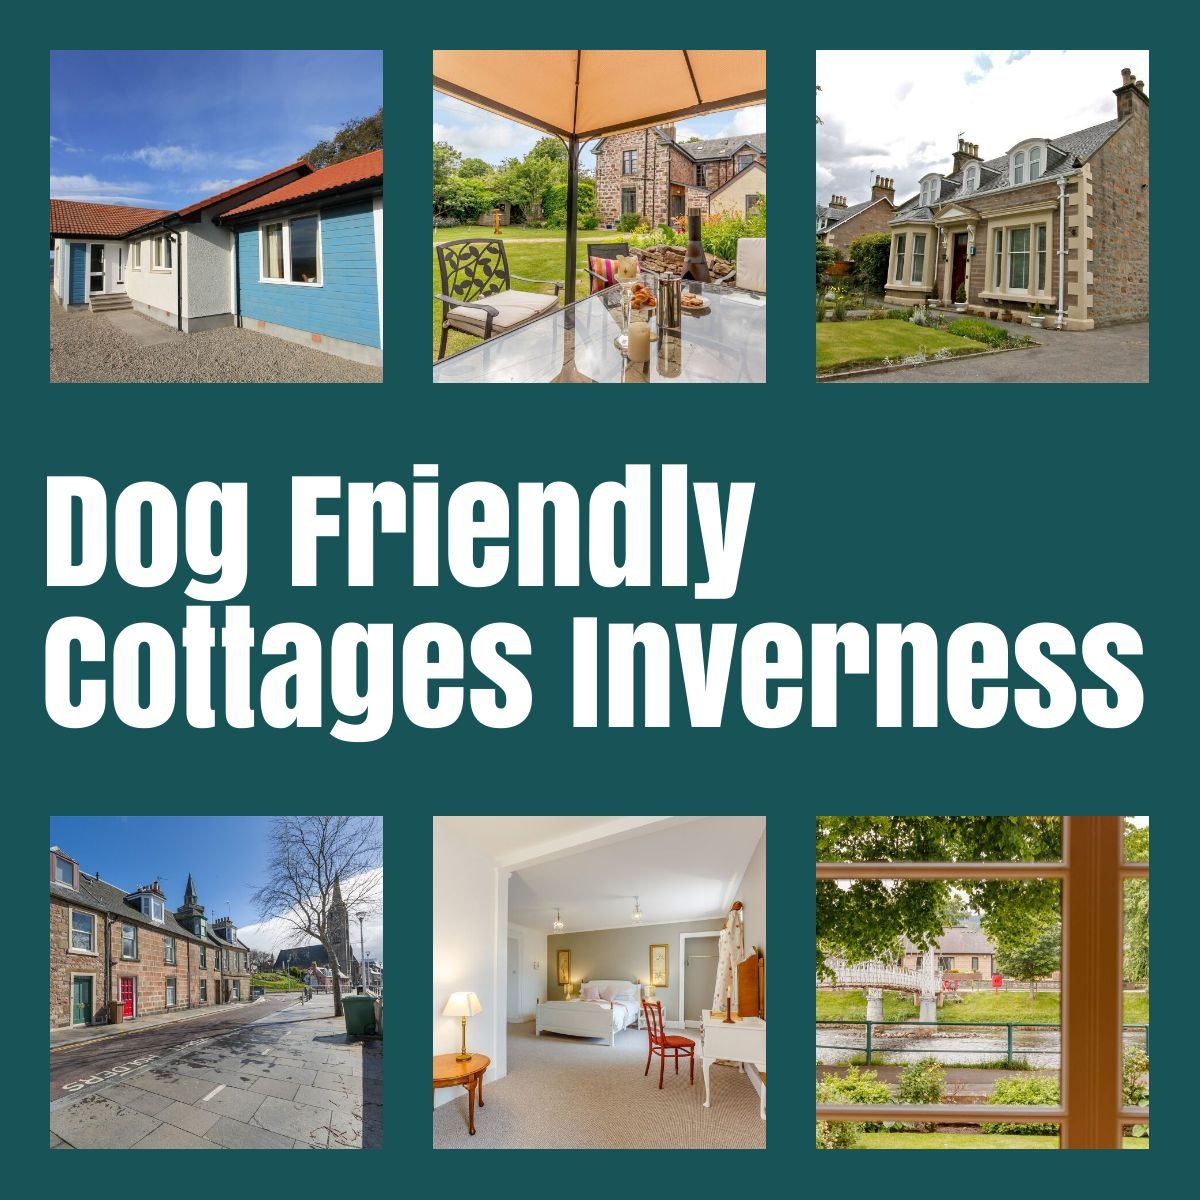 dog friendly cottages inverness the professional traveller